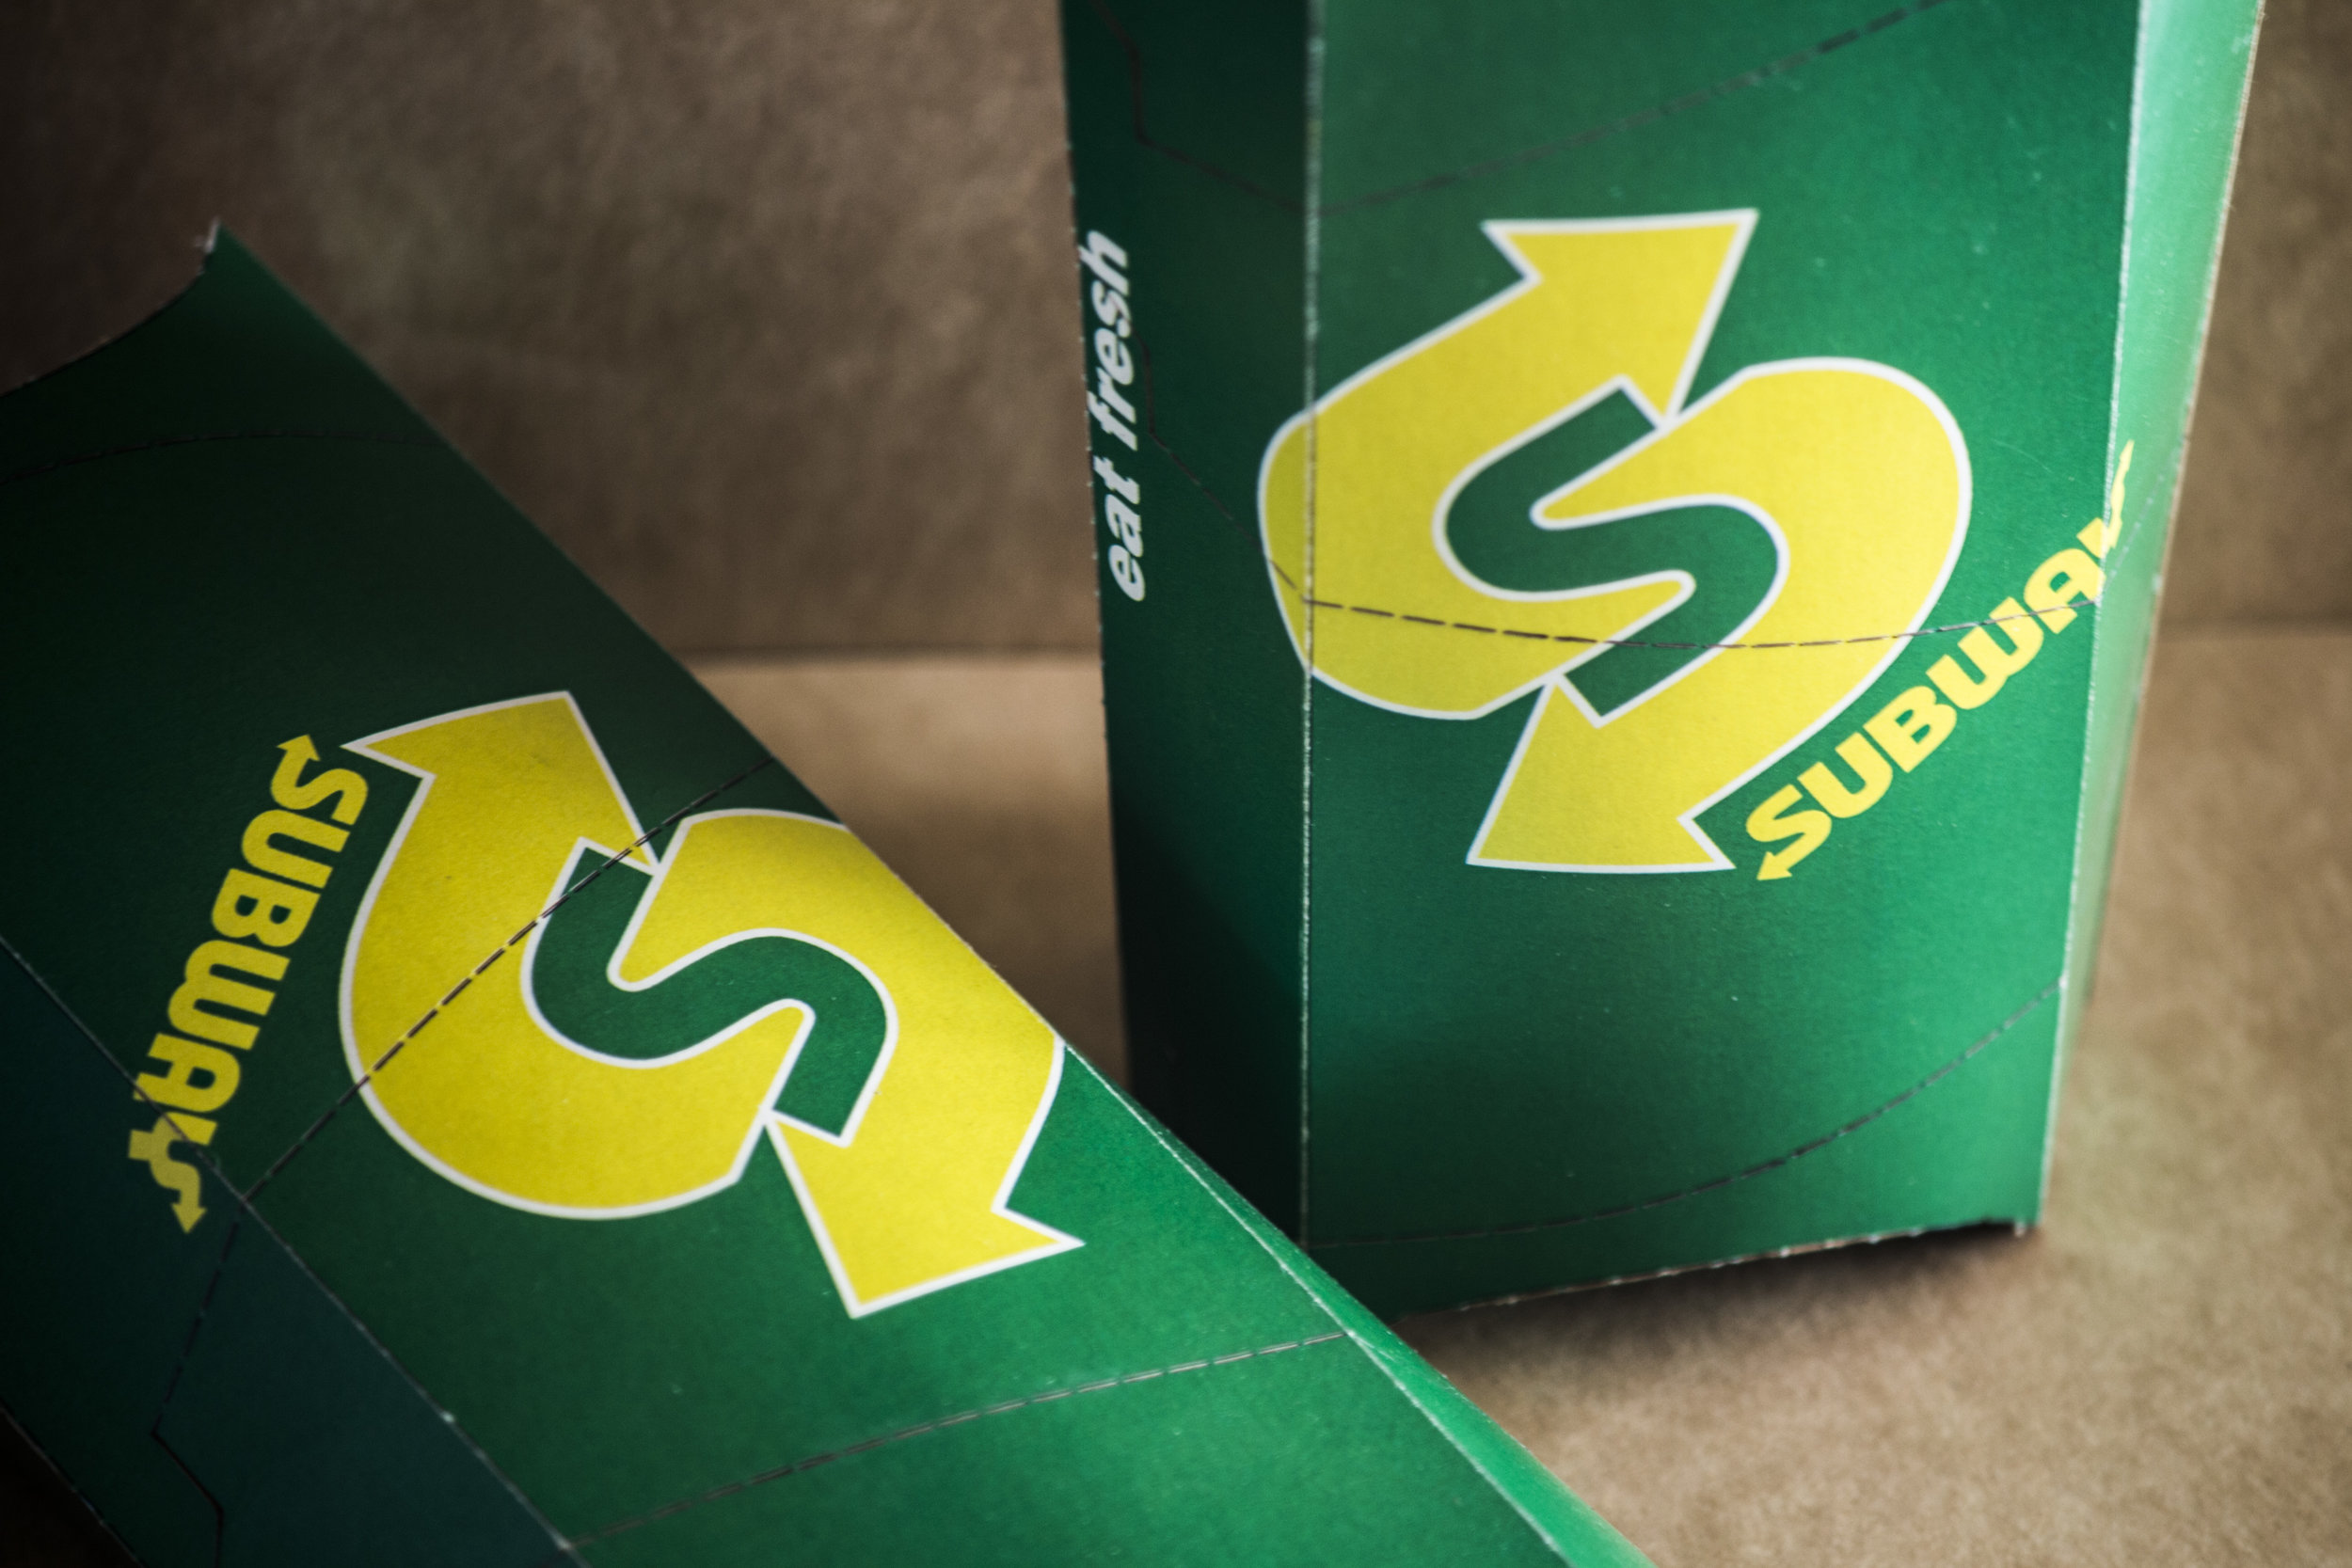 Student Packaging Design Concept for Sandwich Brand